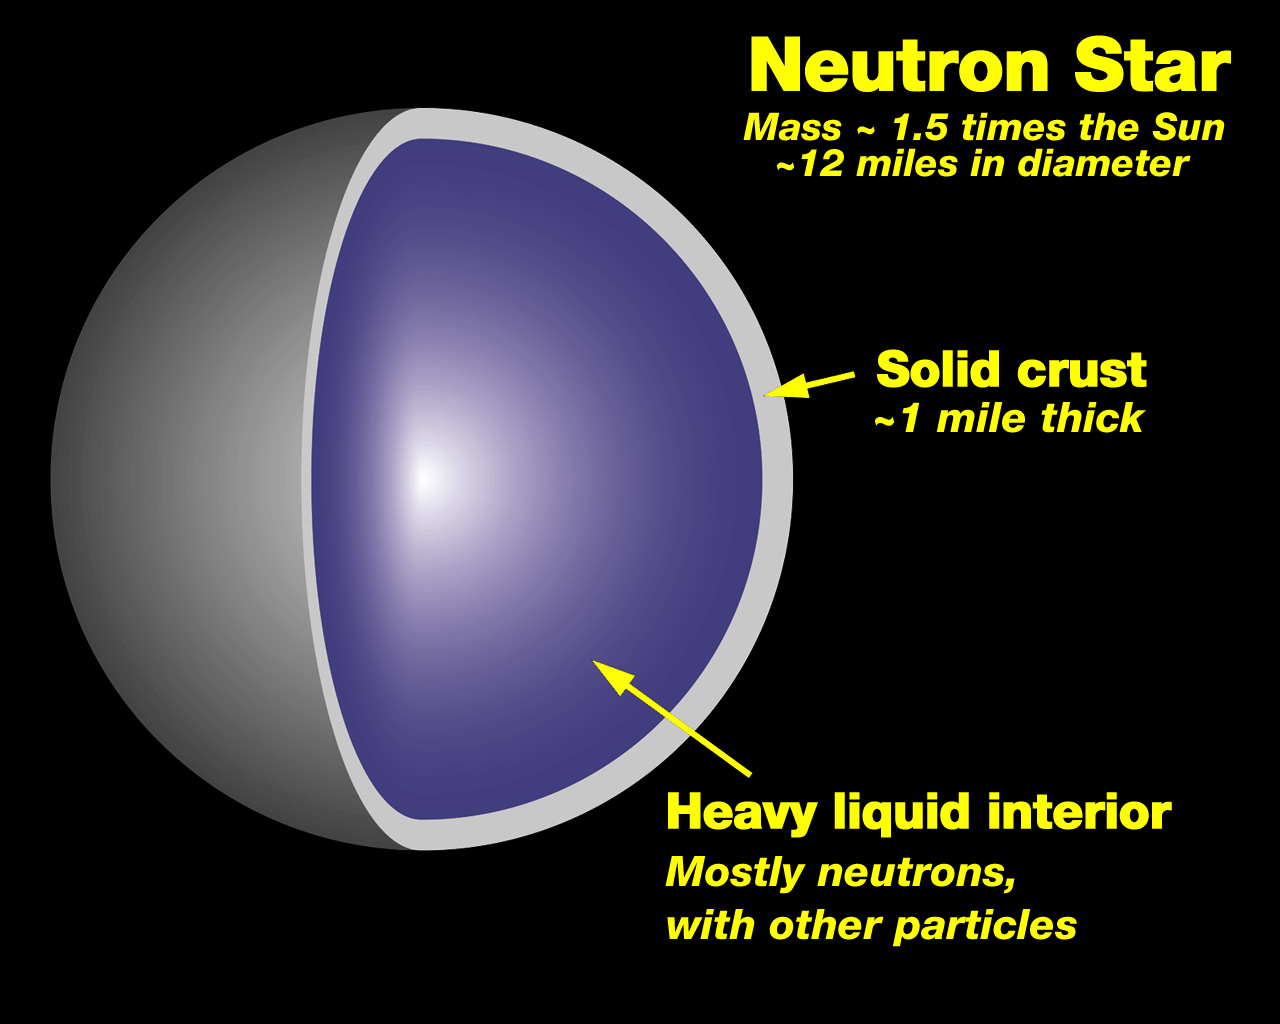 Introduction to neutron stars M Coleman Miller Professor of Astronomy University of Maryland Welcome to my neutron star page! I need to emphasize that the stuff I